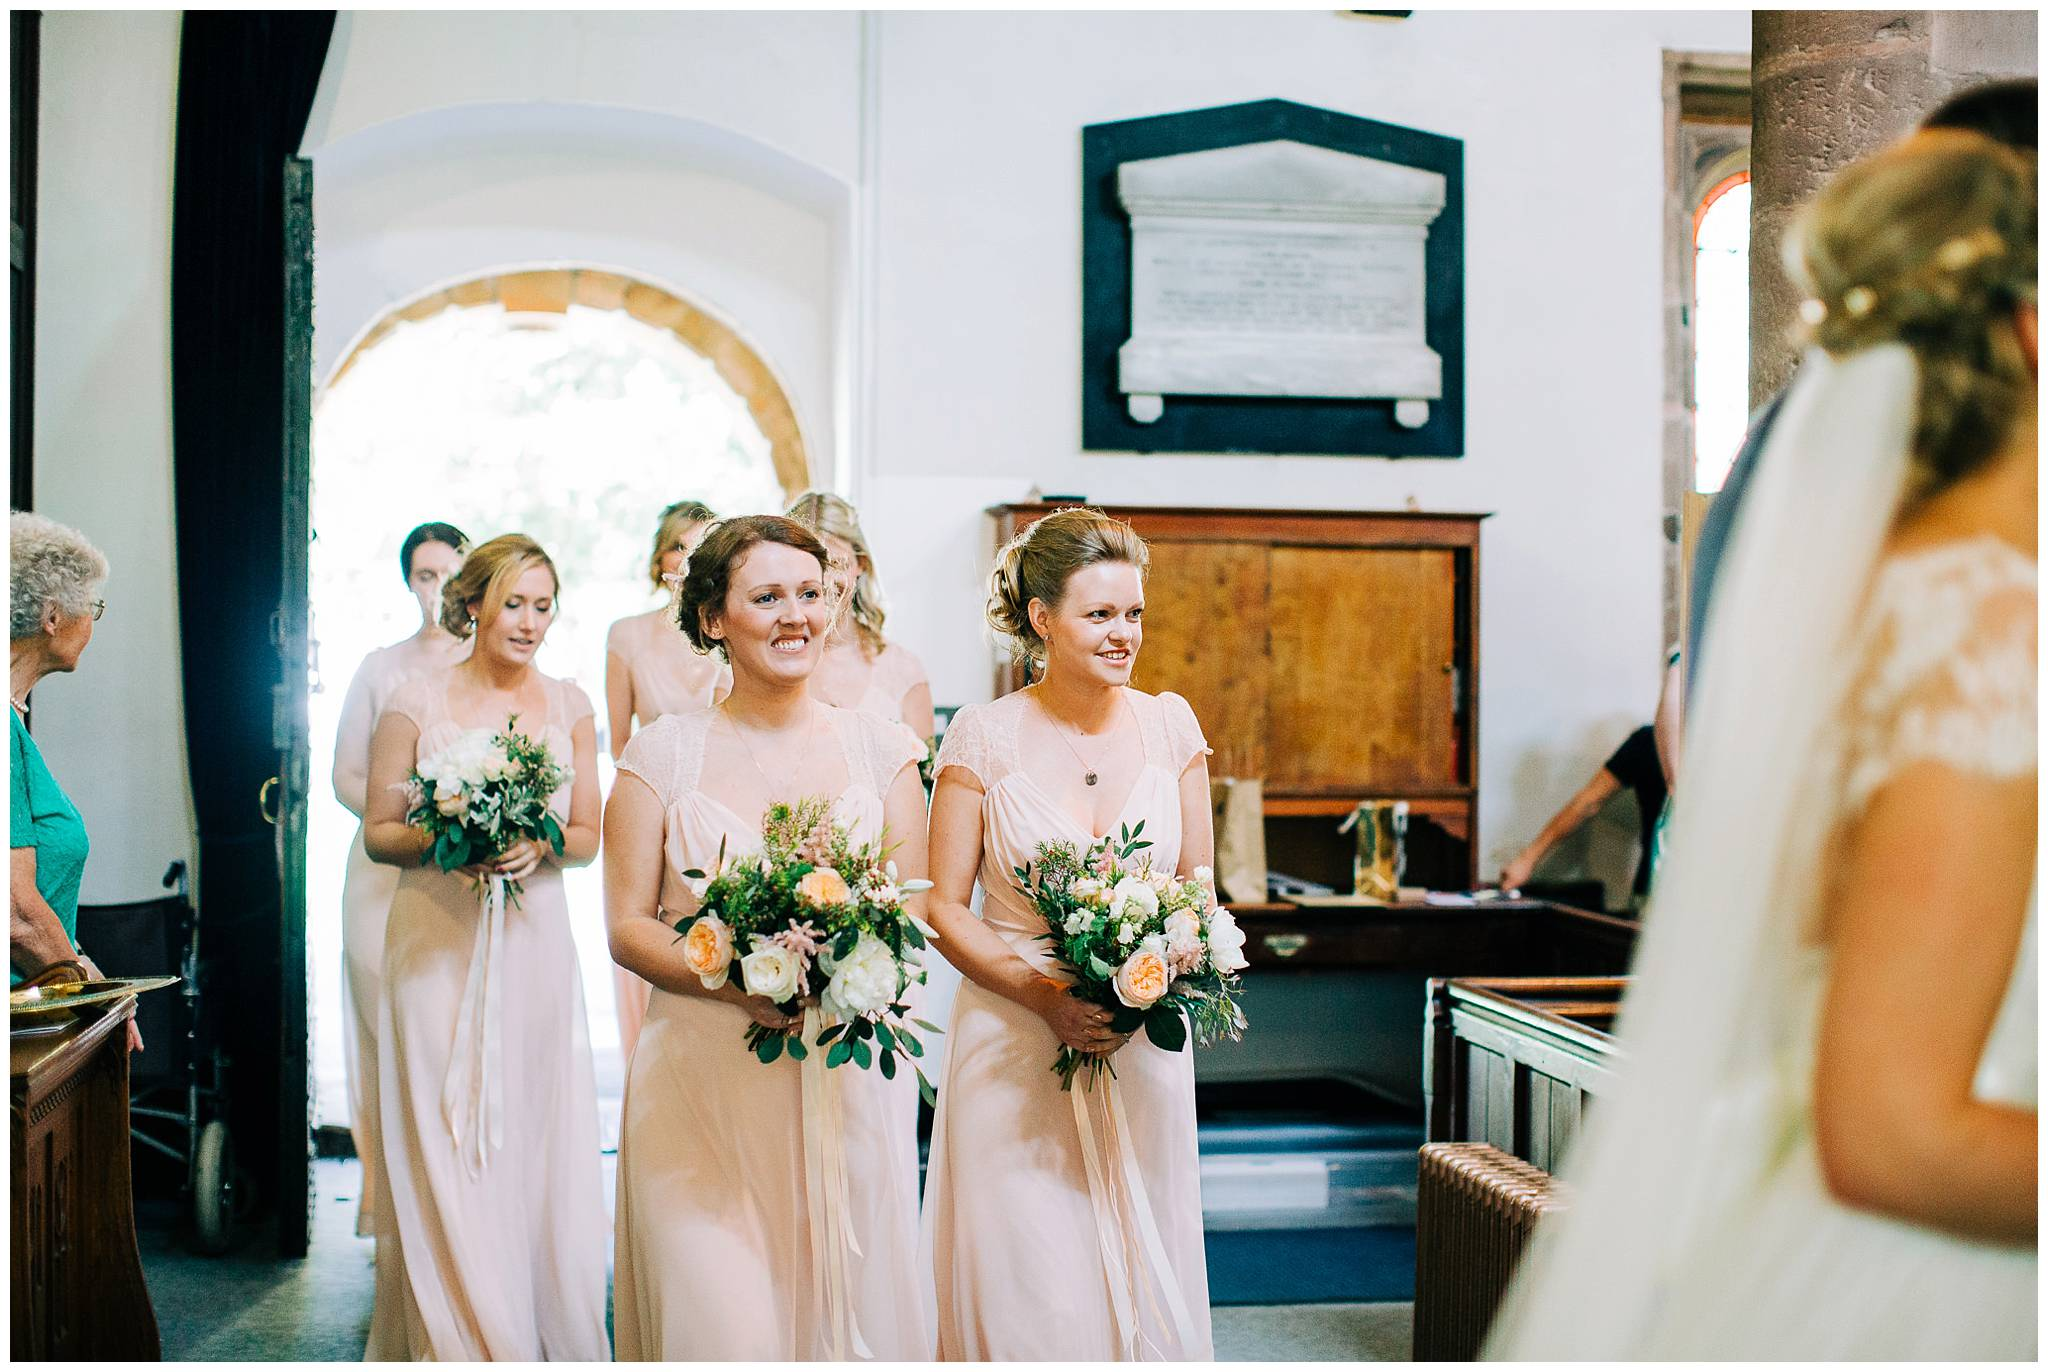 the bridesmaids wearing pale pink dresses follow the bride into the church and down the aisle